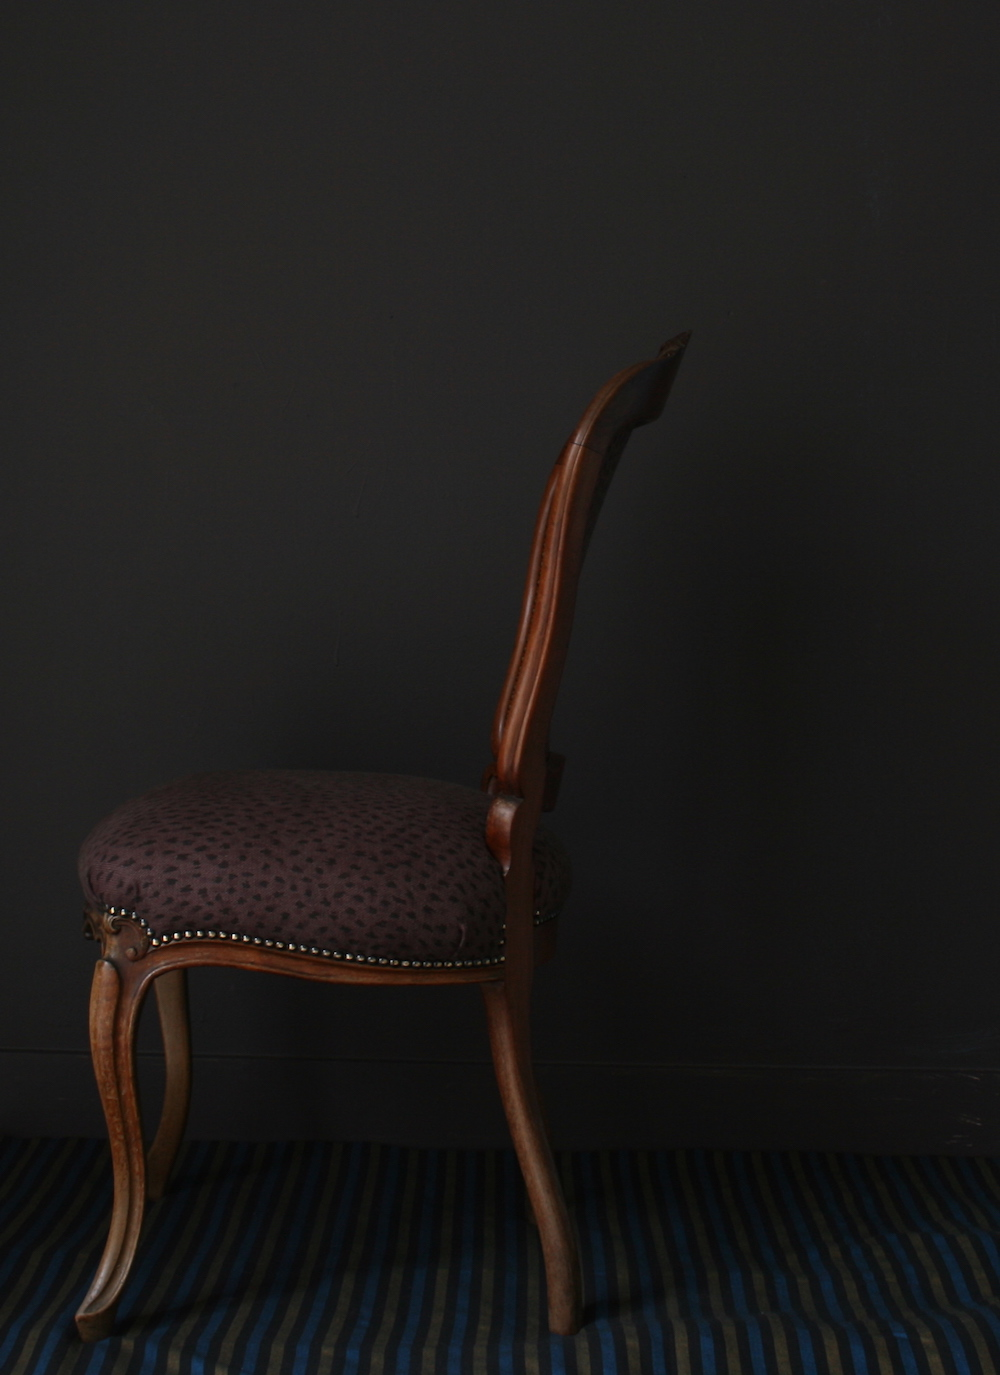 Cheetah aub chair side on dark RESIZED.jpeg